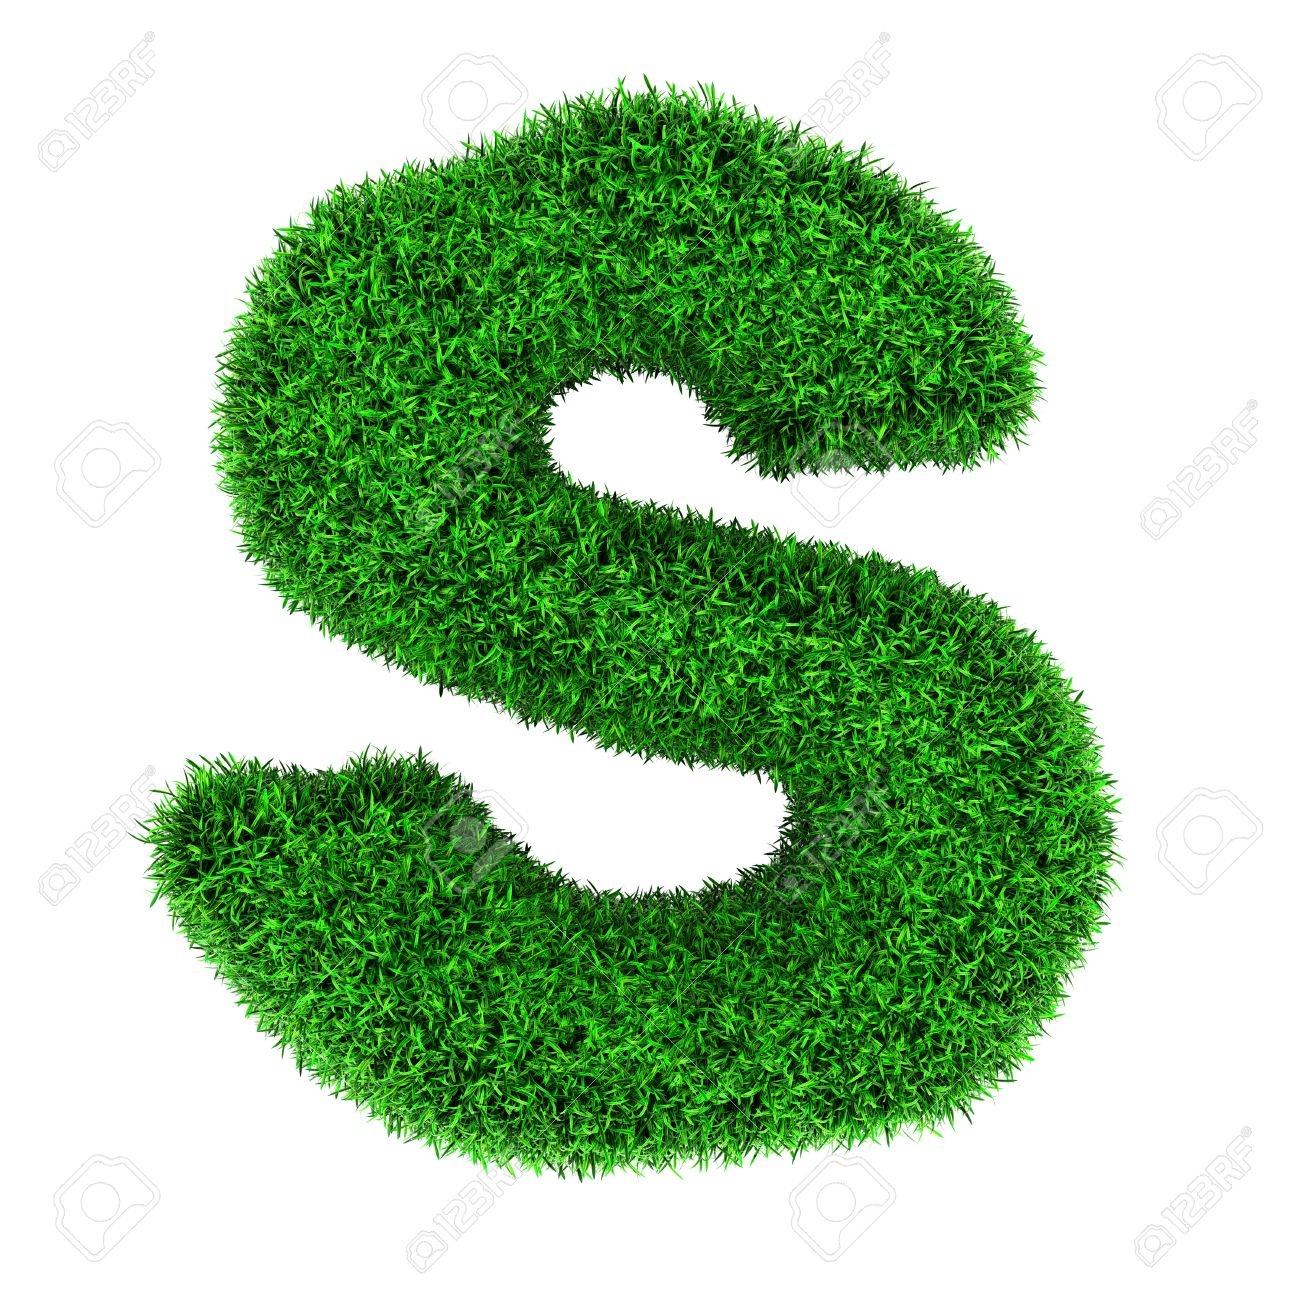 Letter S Made Of Grass Isolated On White Background